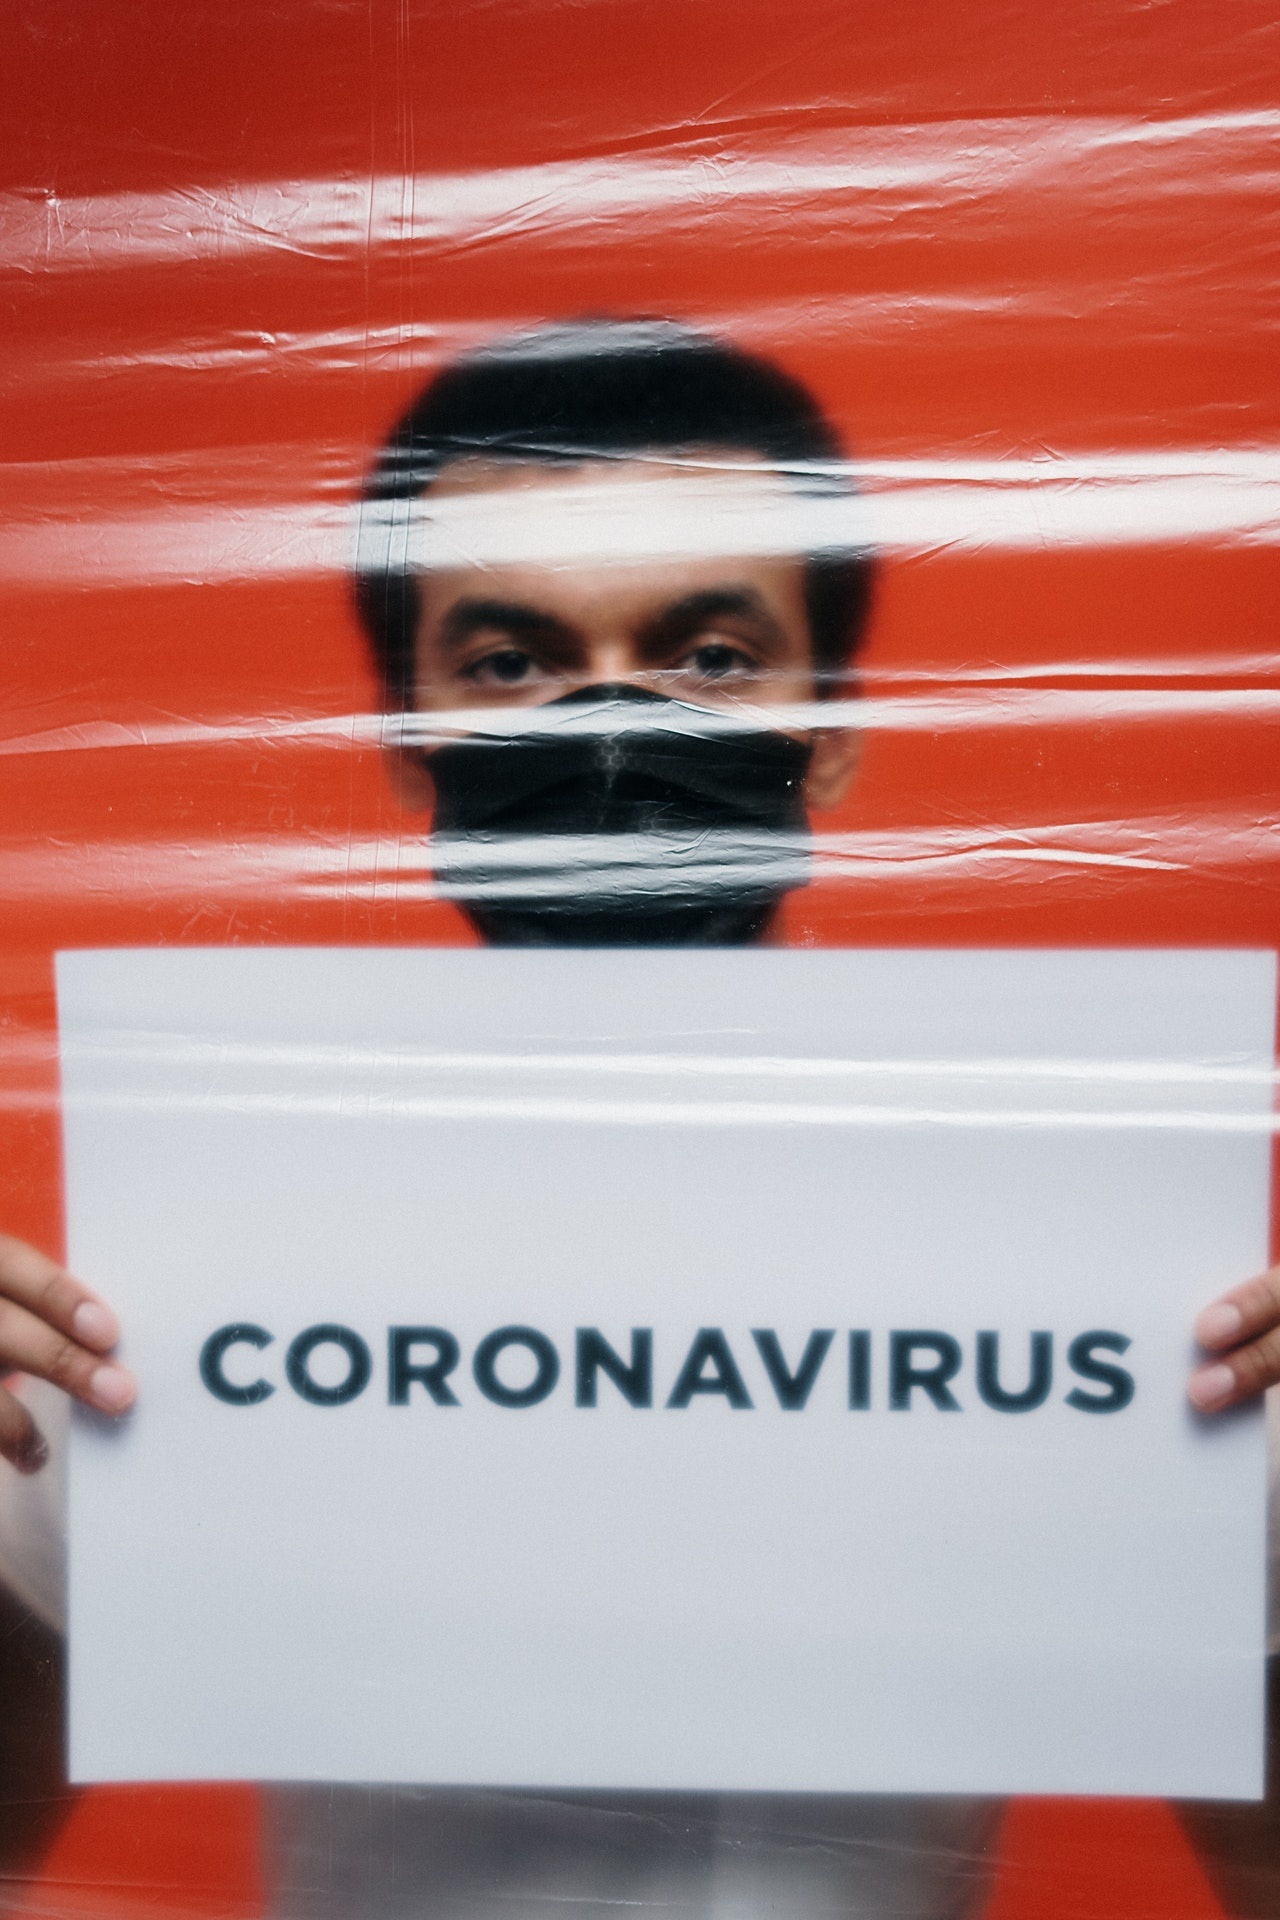 man-with-face-mask-holding-a-poster-with-coronavirus-text-3952183